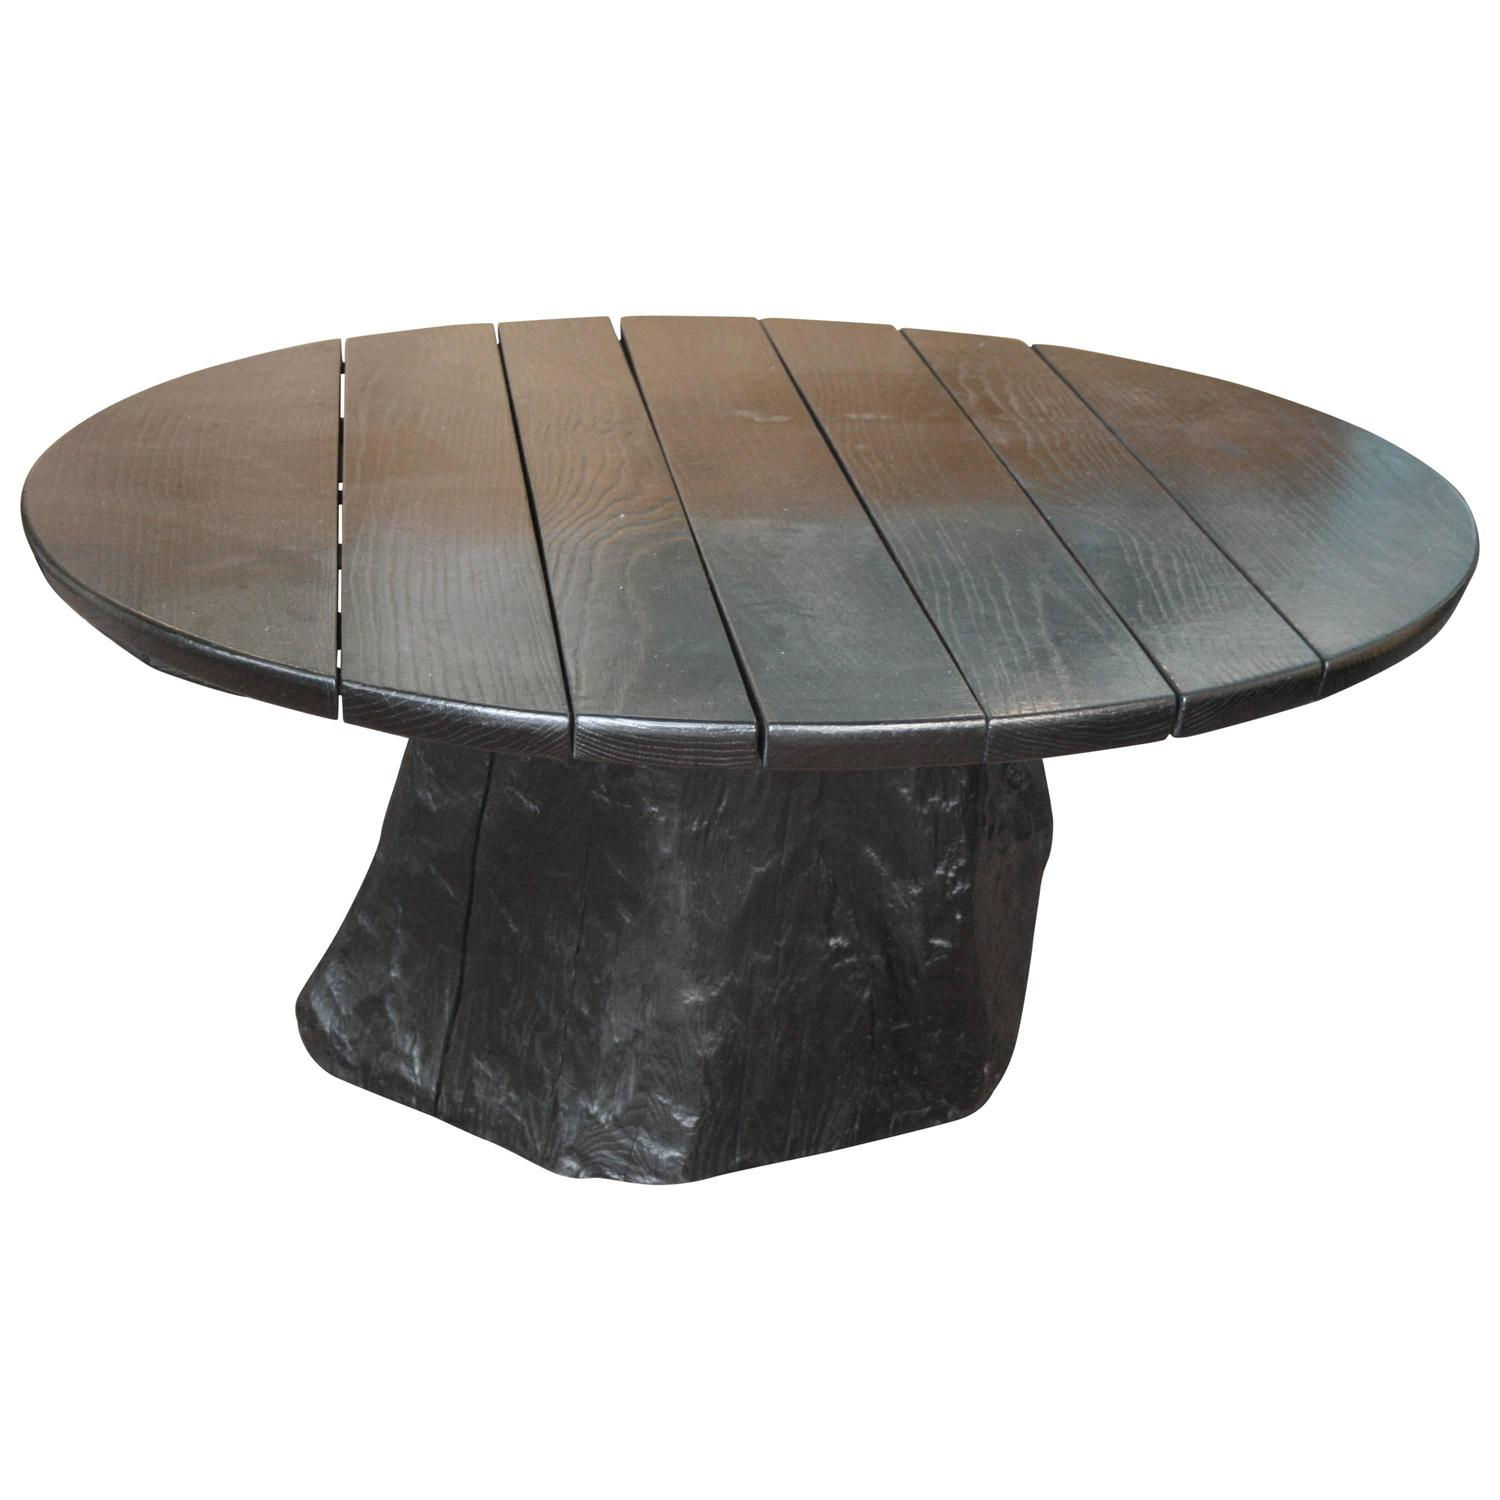 Round ebonized oak coffee table with live edge tree trunk base for sale at 1stdibs Bases for coffee tables